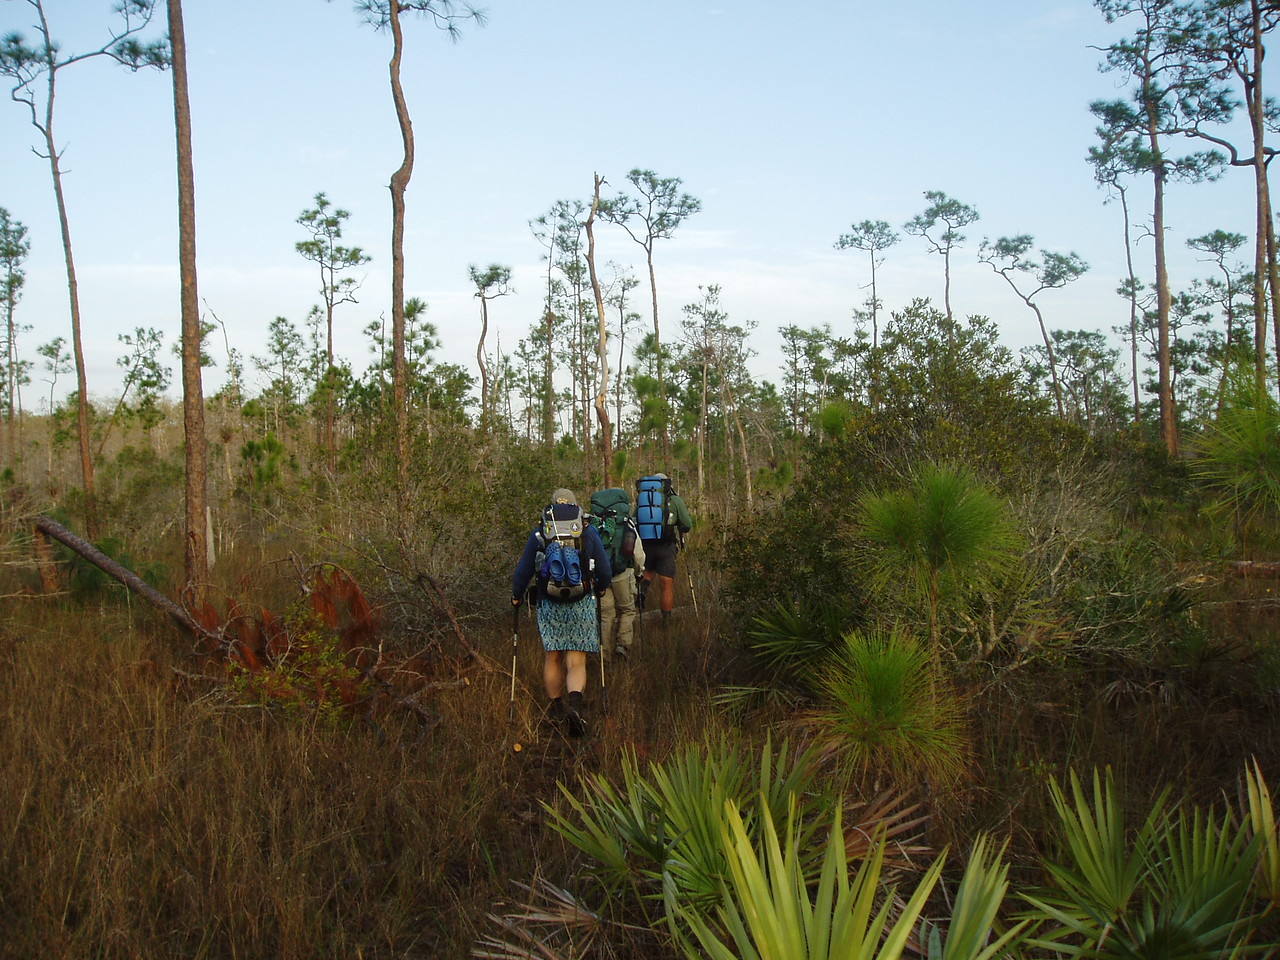 Backpacking through Dade County pine<br /> PHOTO CREDIT: Robert Coveney / Florida Trail Association